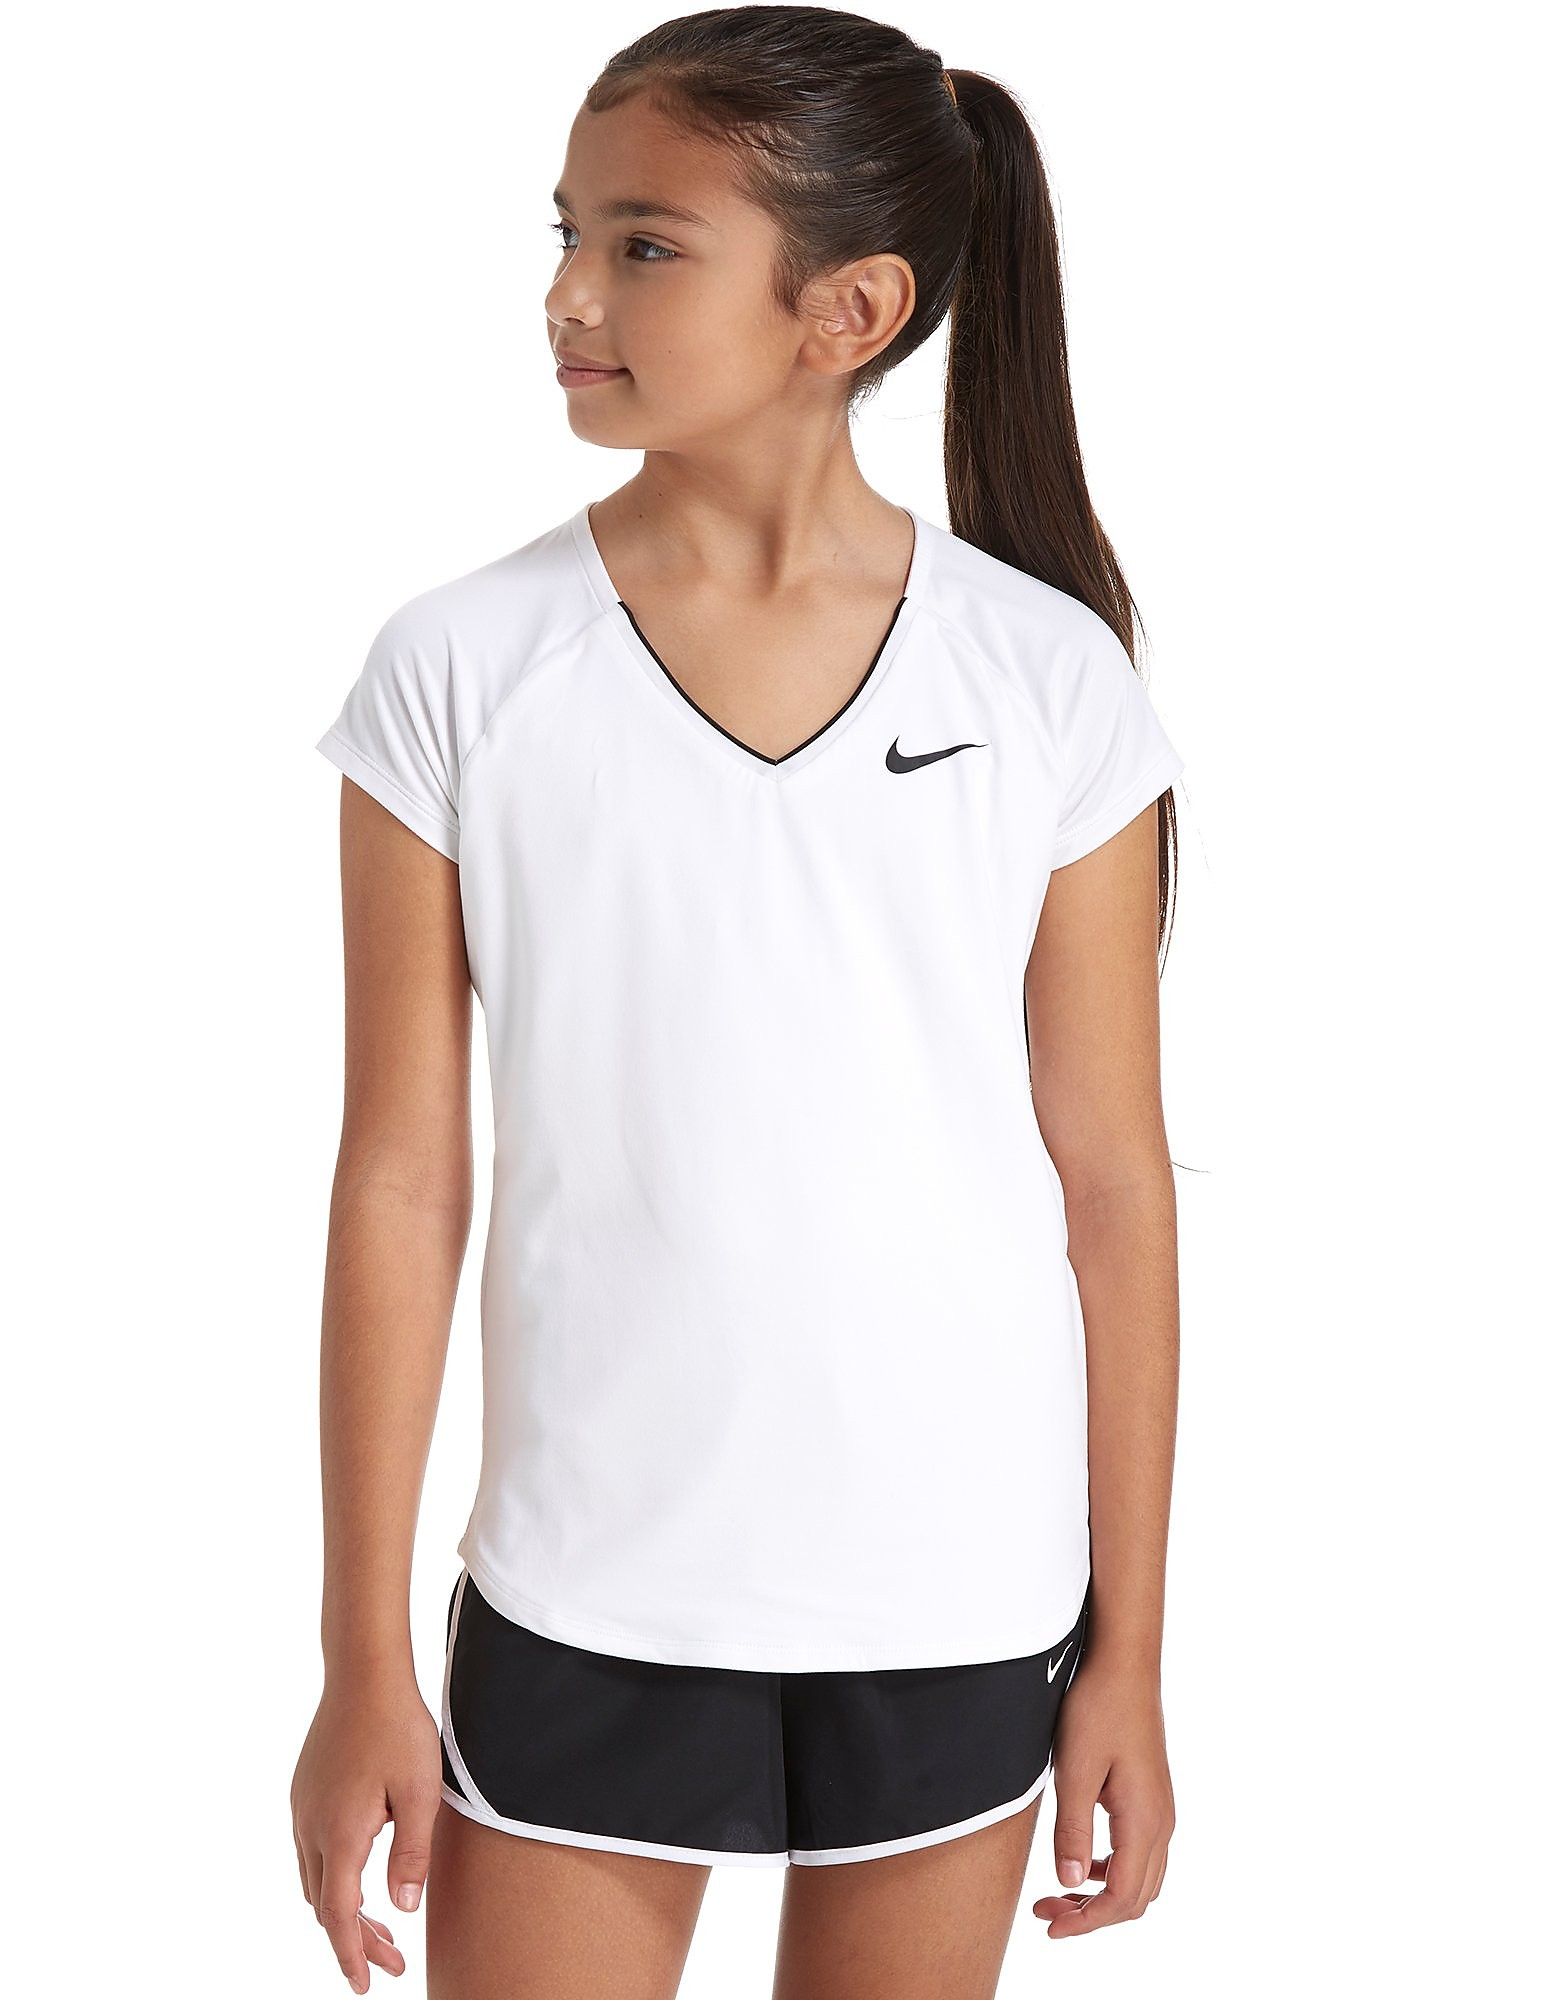 Nike Girls' Nike Pure Tennis Top Junior